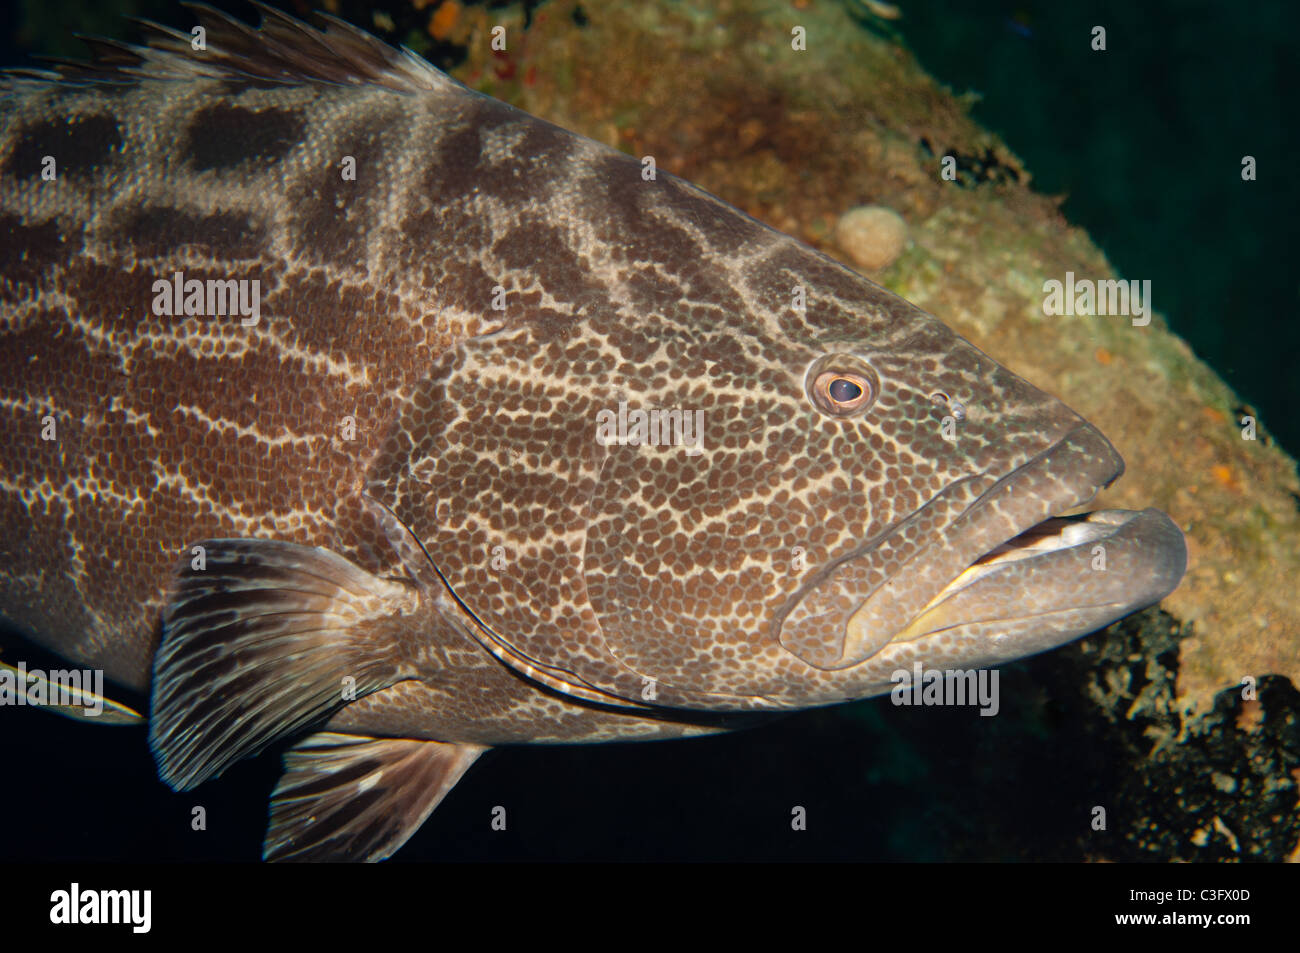 Black groupers are some of the larger predatory fish that can be found on Caribbean reefs. - Stock Image